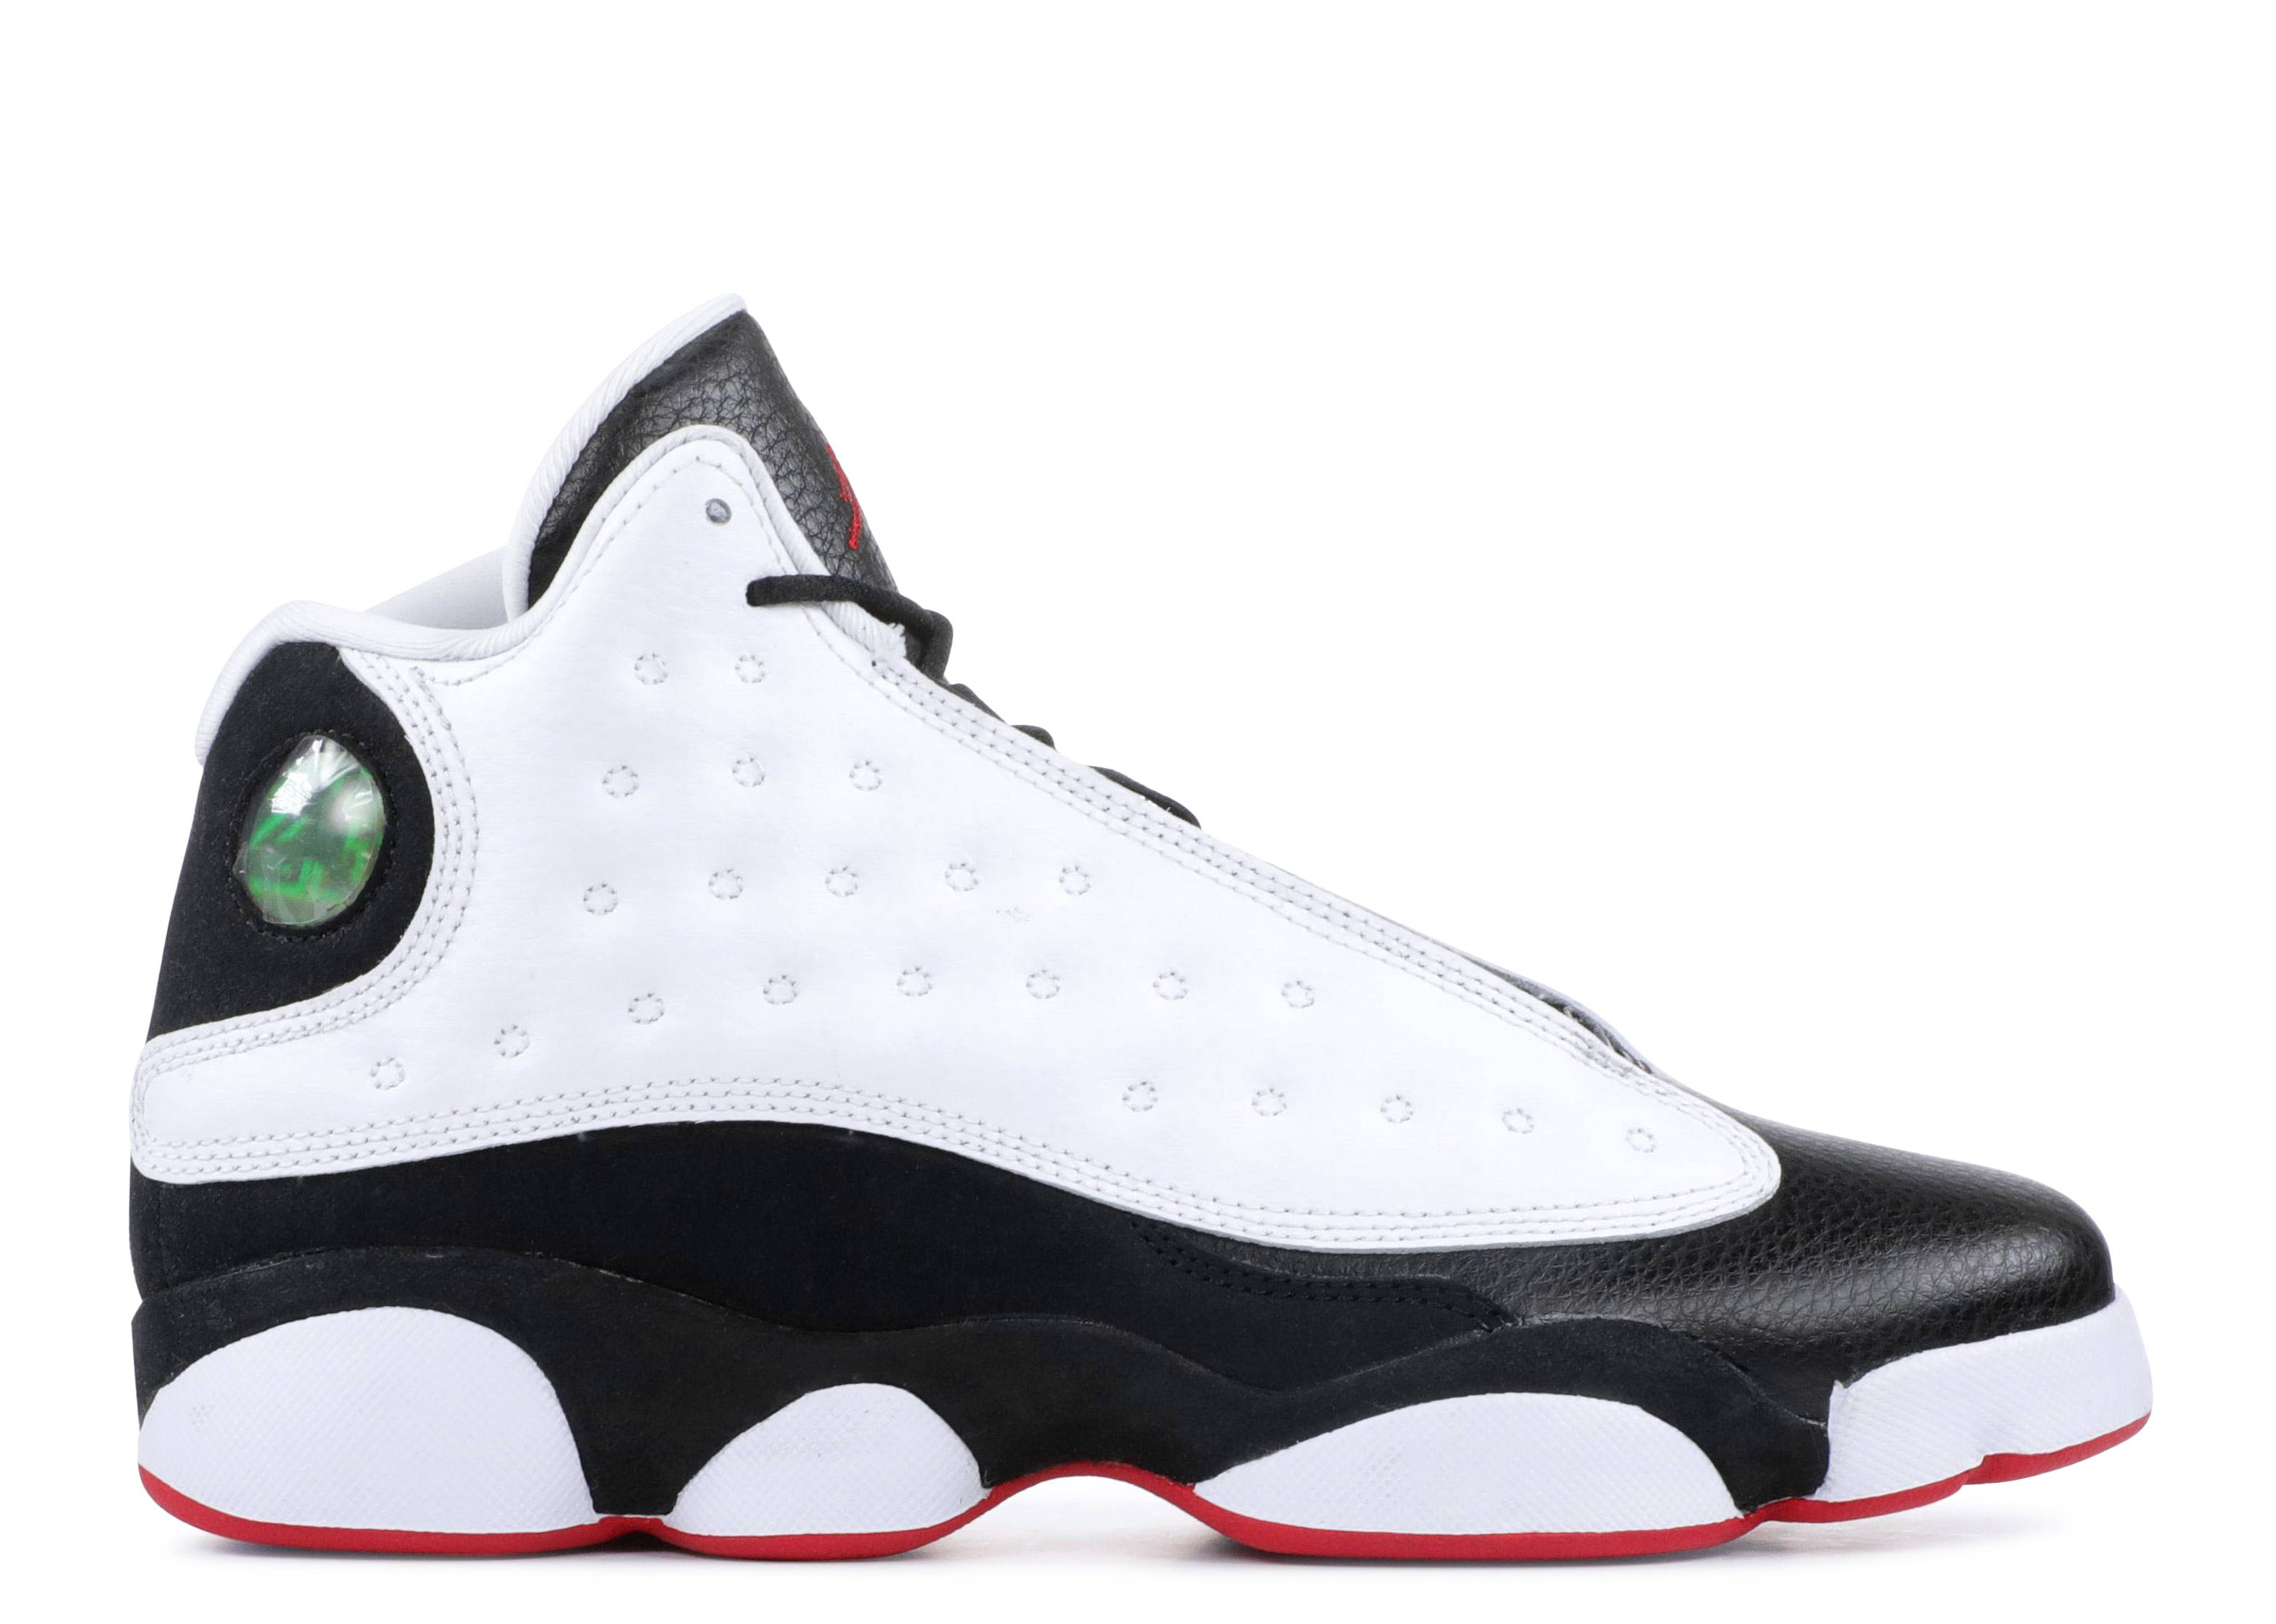 5df3071c88c93 air jordan 13 retro bg gs